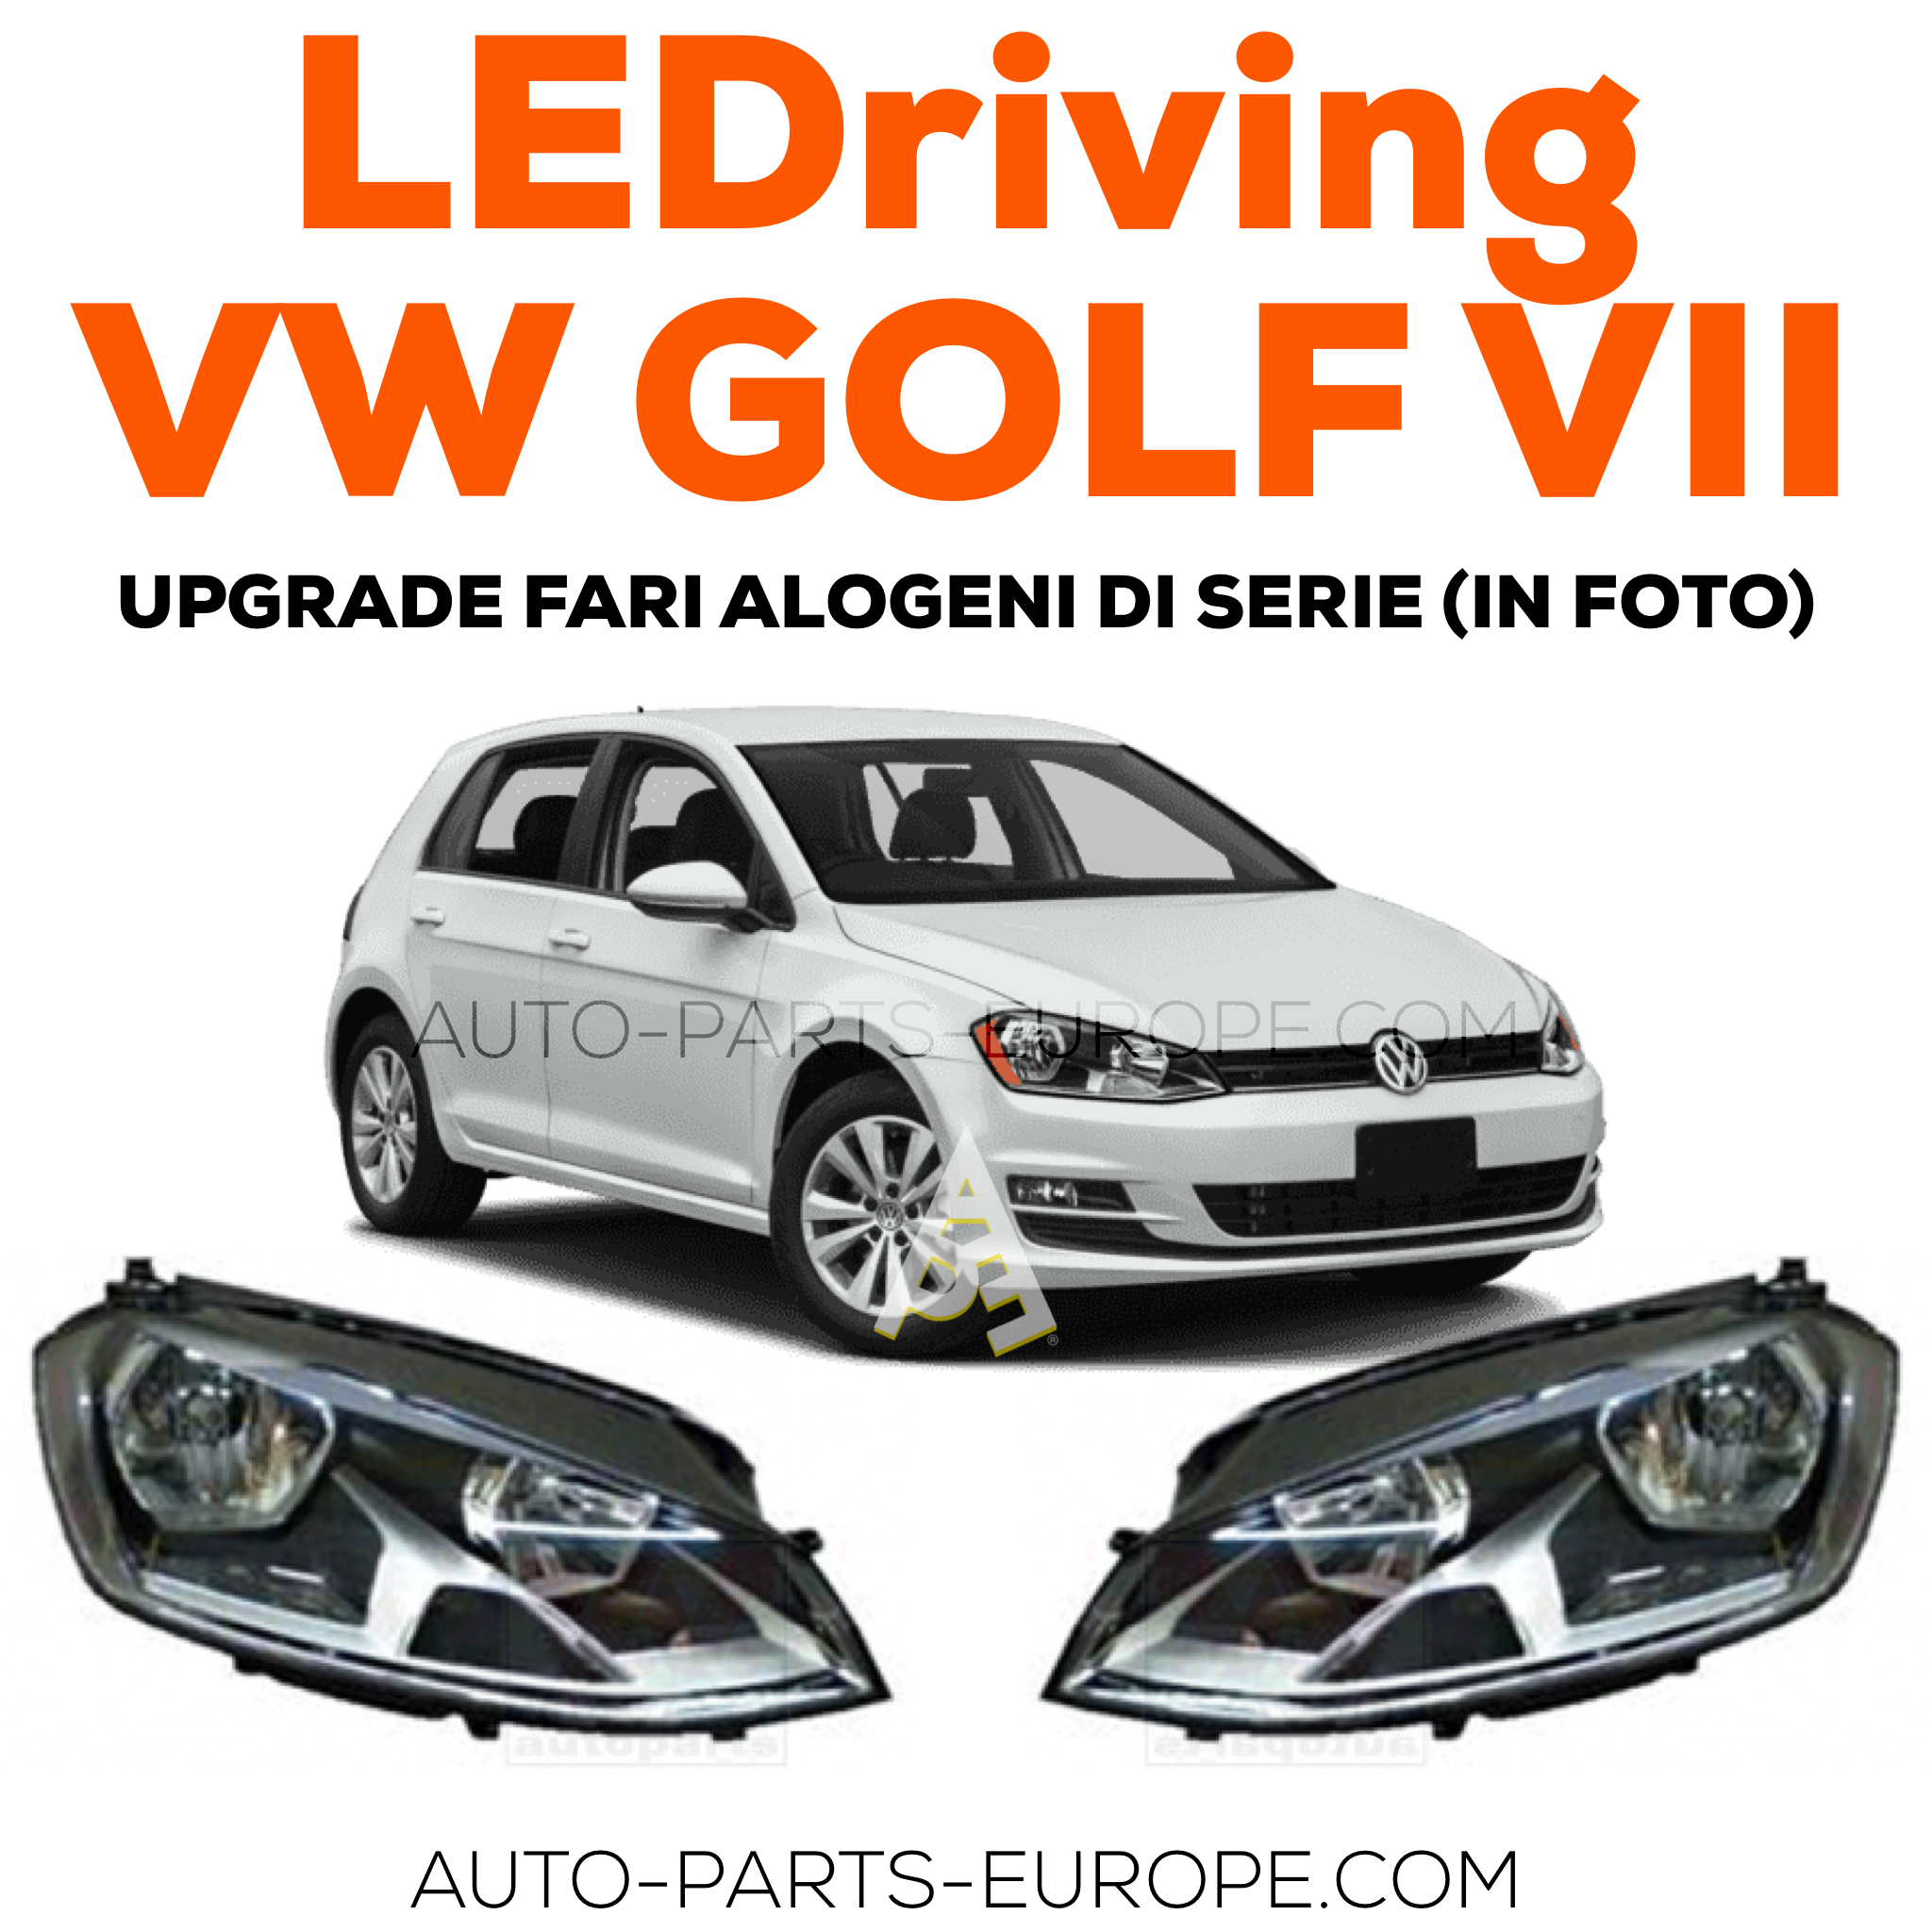 OSRAM LEDriving VW Golf VII black full LED headlight kit